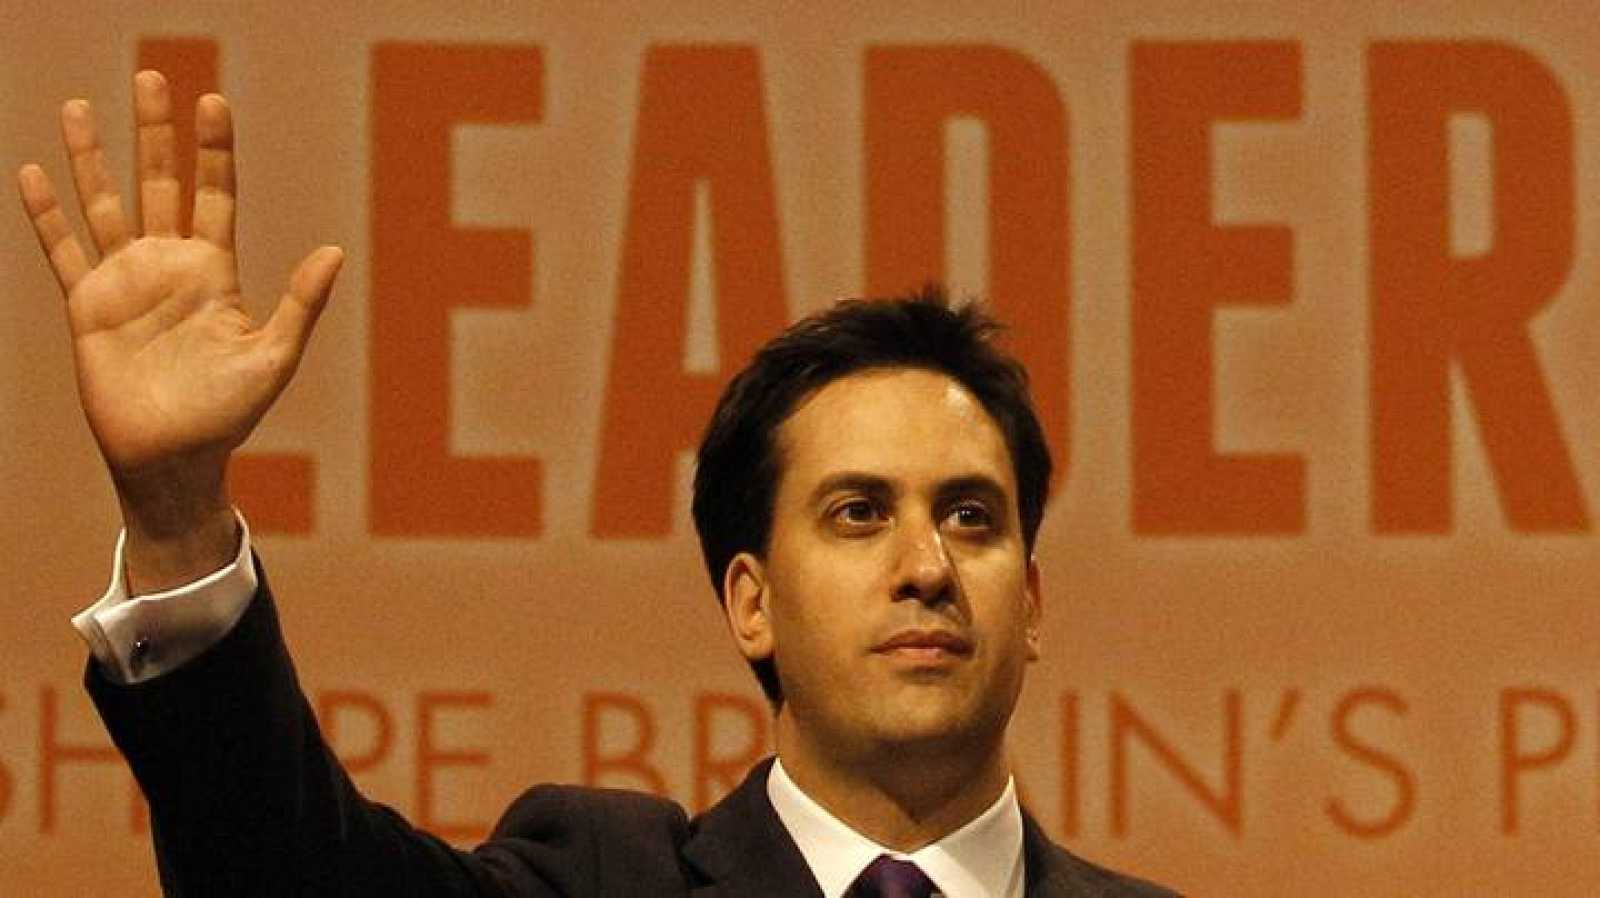 Former cabinet member Ed Miliband waves after being named the new leader of Britain's Labour Party at their annual conference in Manchester